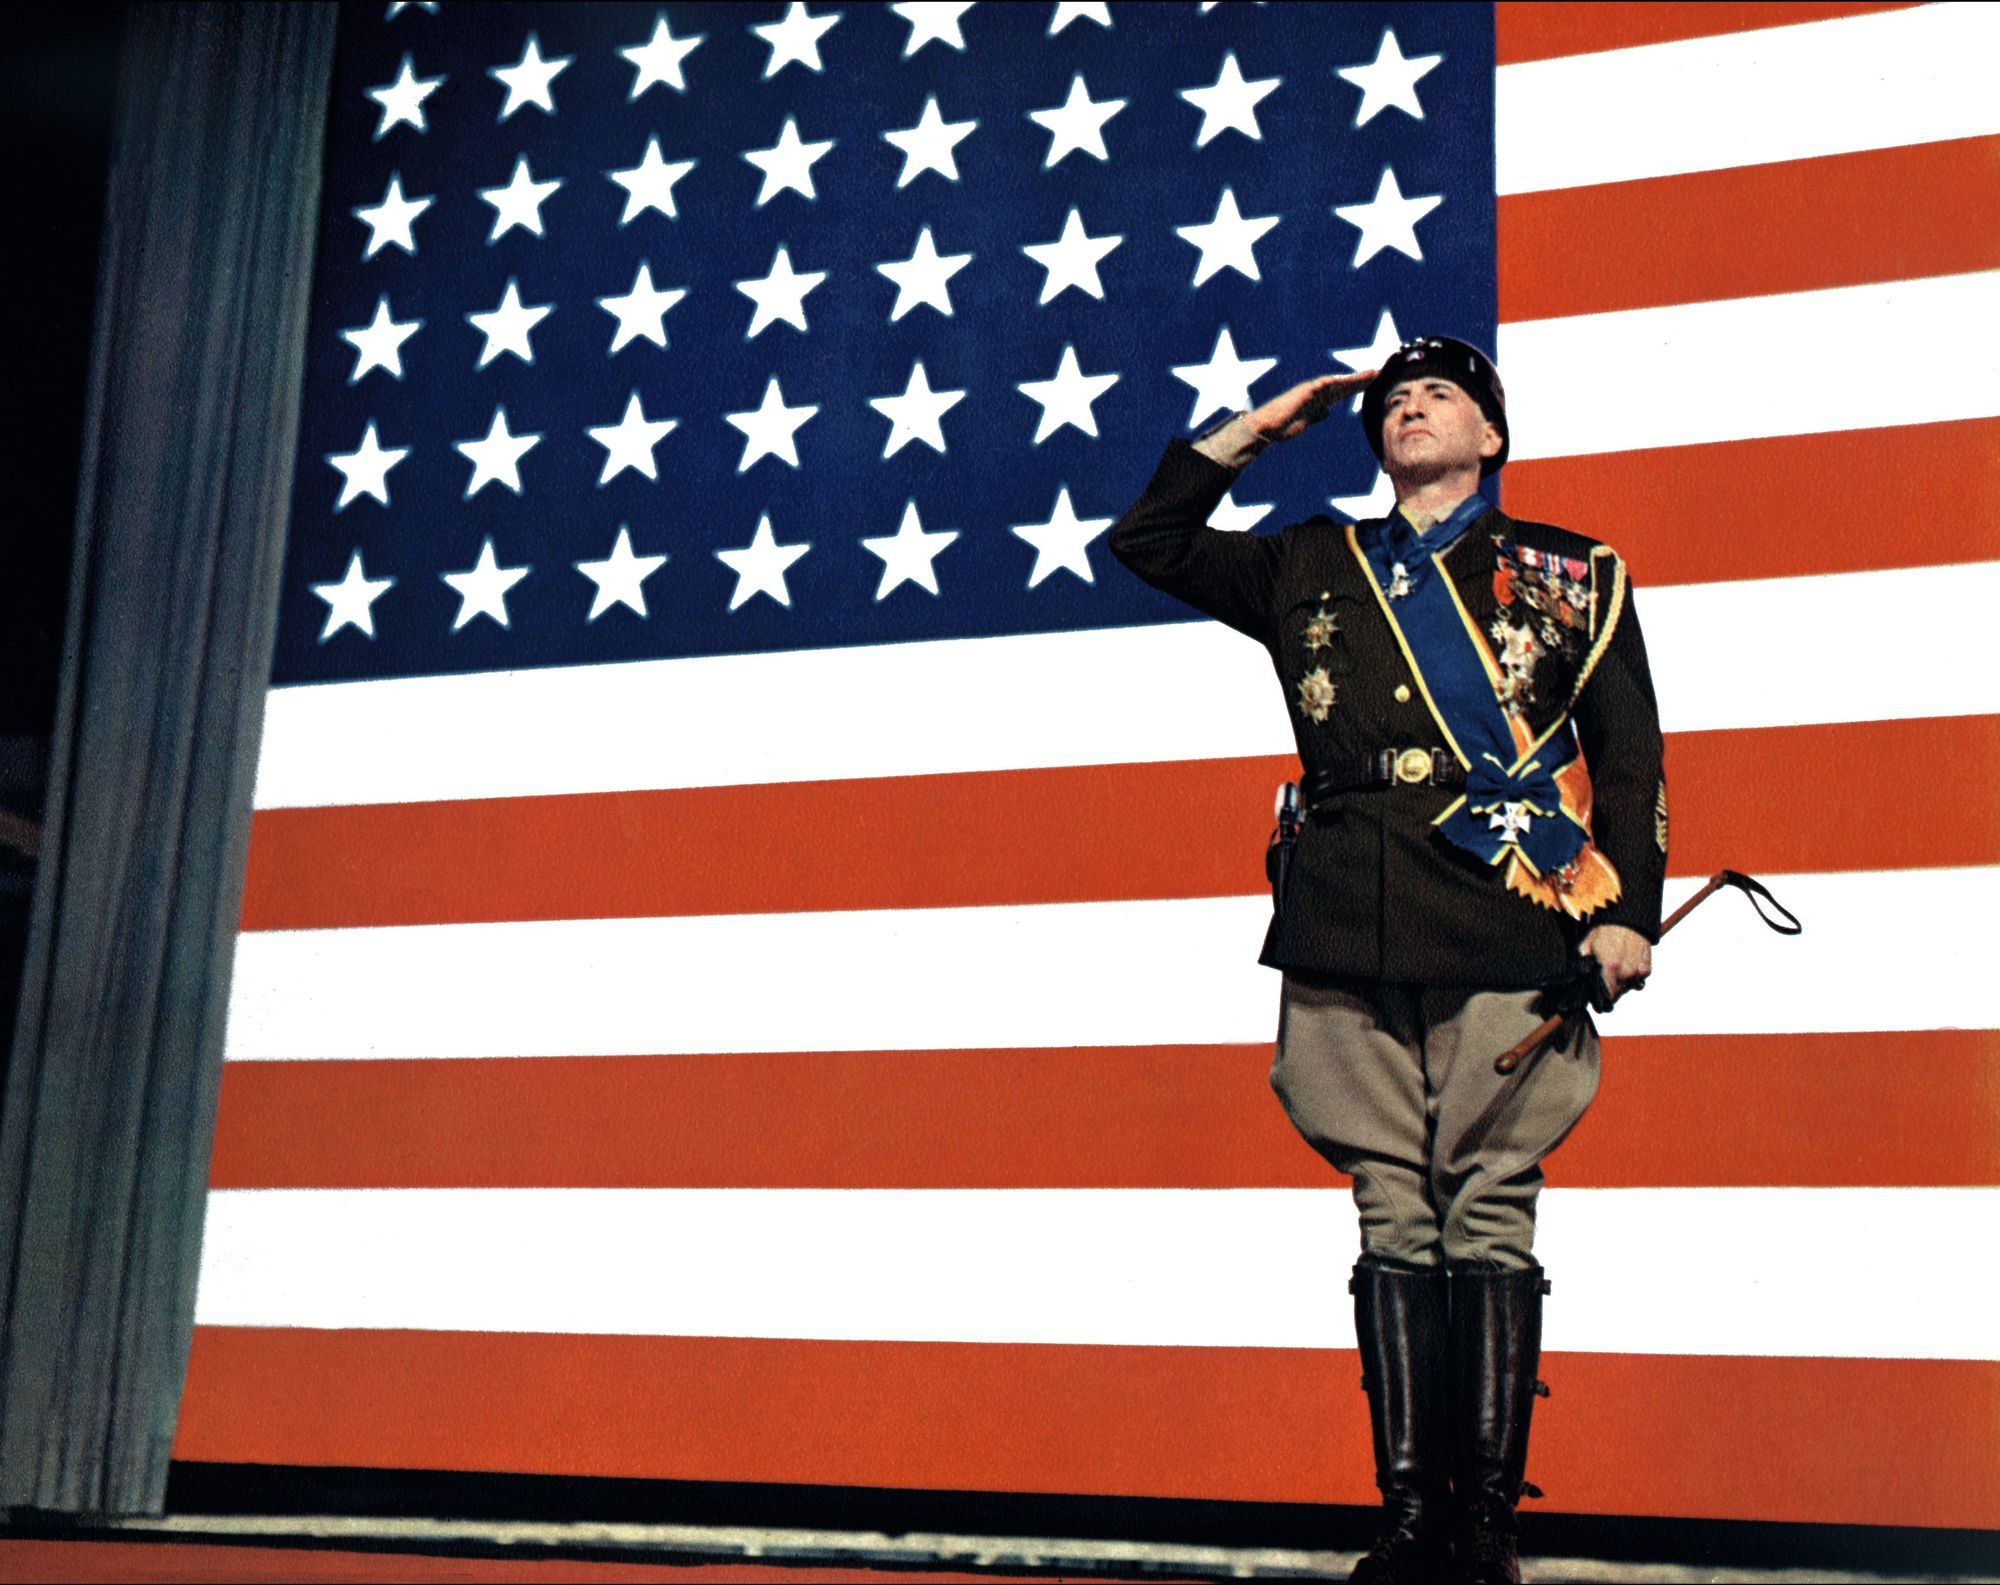 Still from the film Patton, by Franklin J. Schaffner, 1970